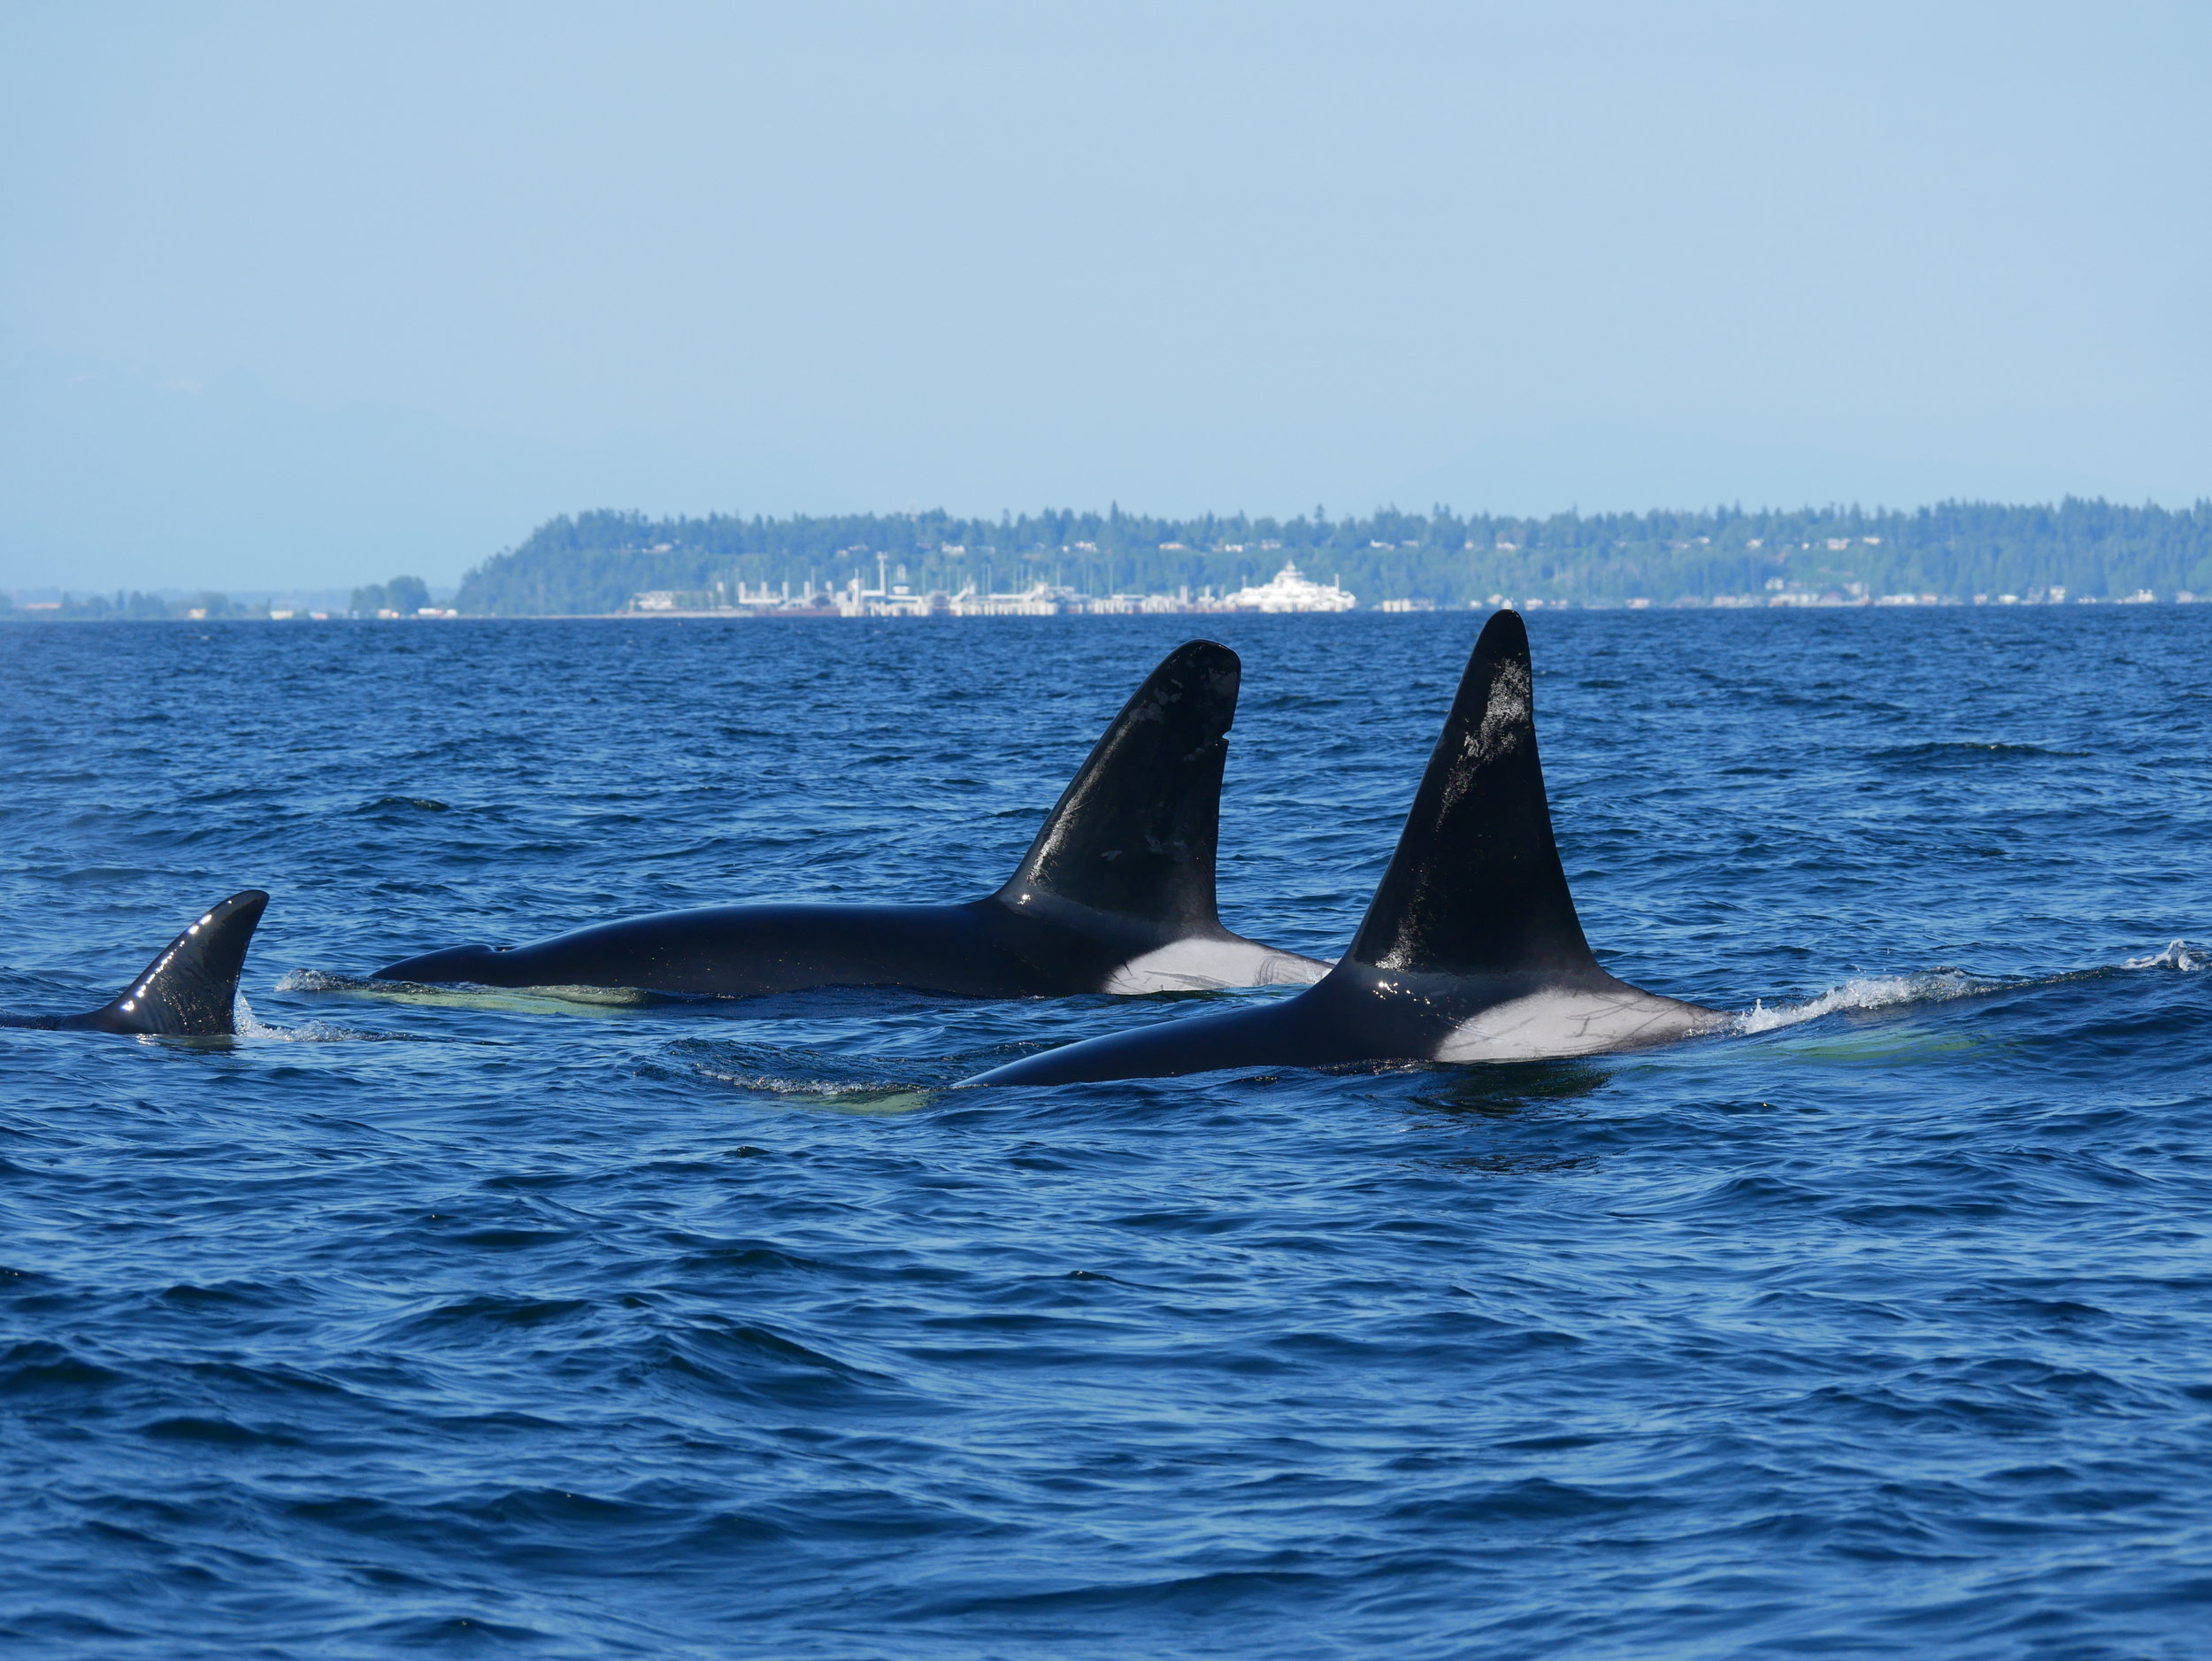 Can't get enough of these guys! These are some of the largest whales in the population. Photo by Val Watson.